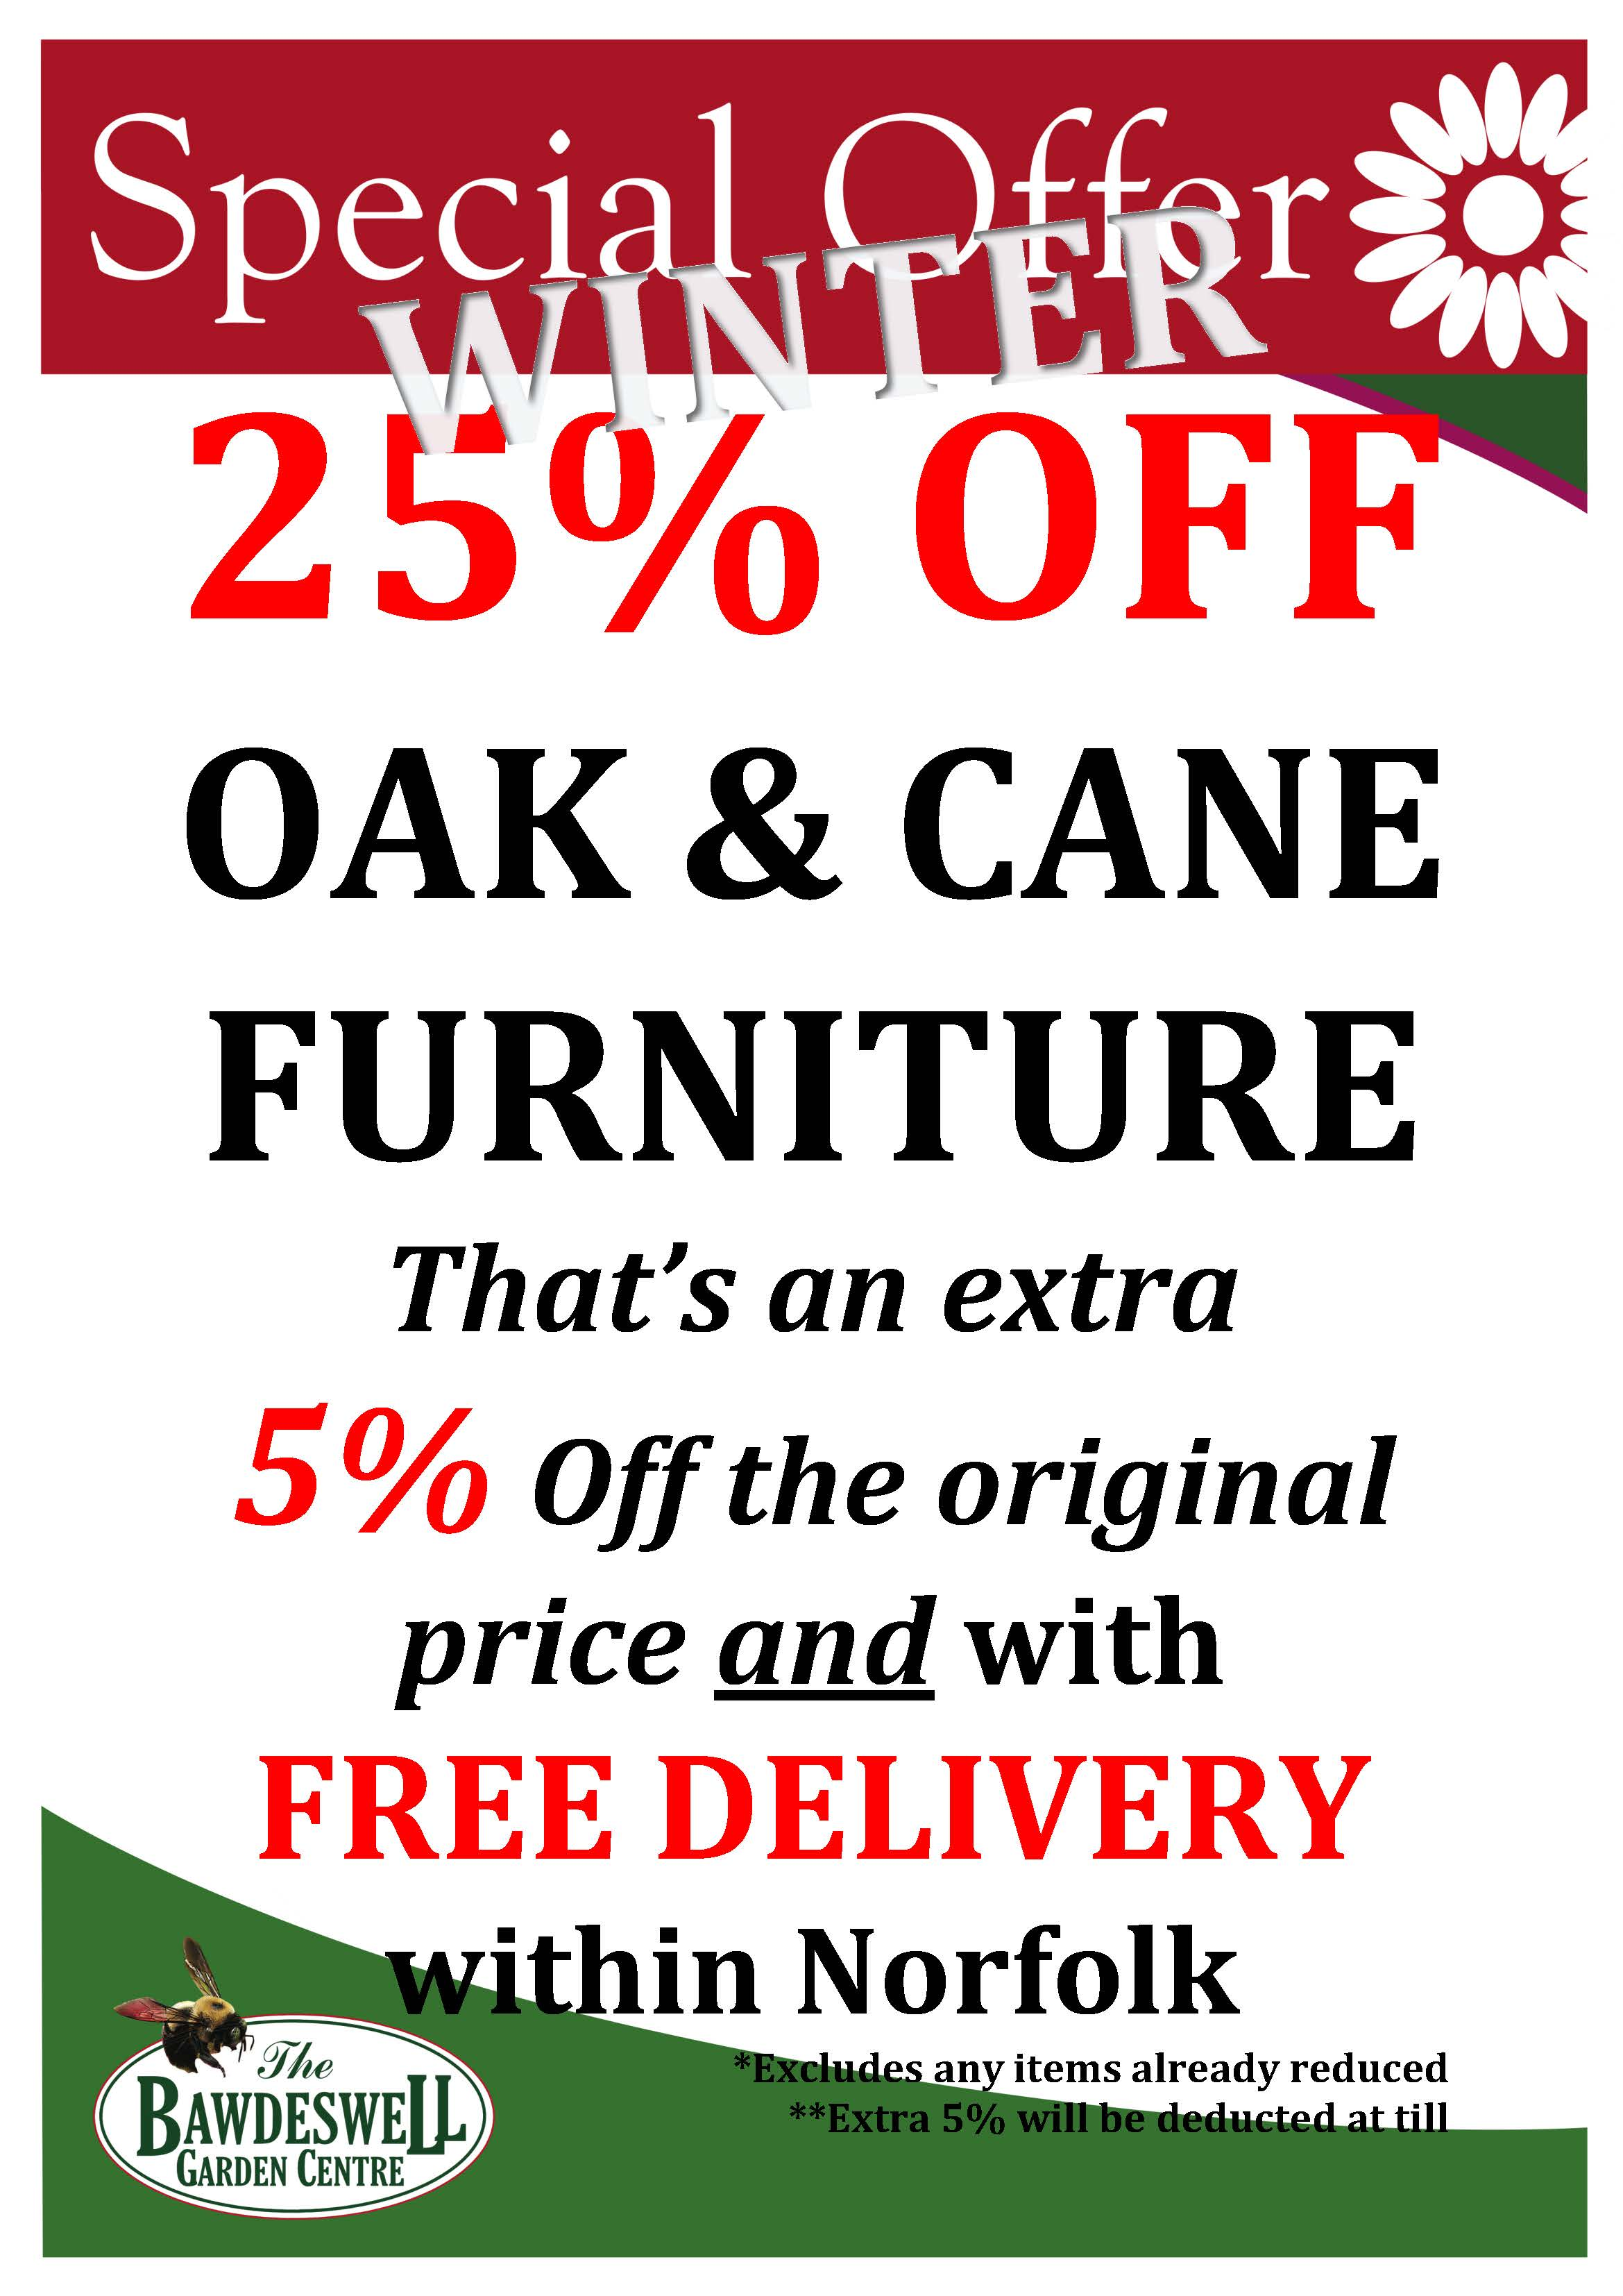 Extra 5% Off Oak Furniture in our Winter Sale - that's a whopping 25% off the original price!